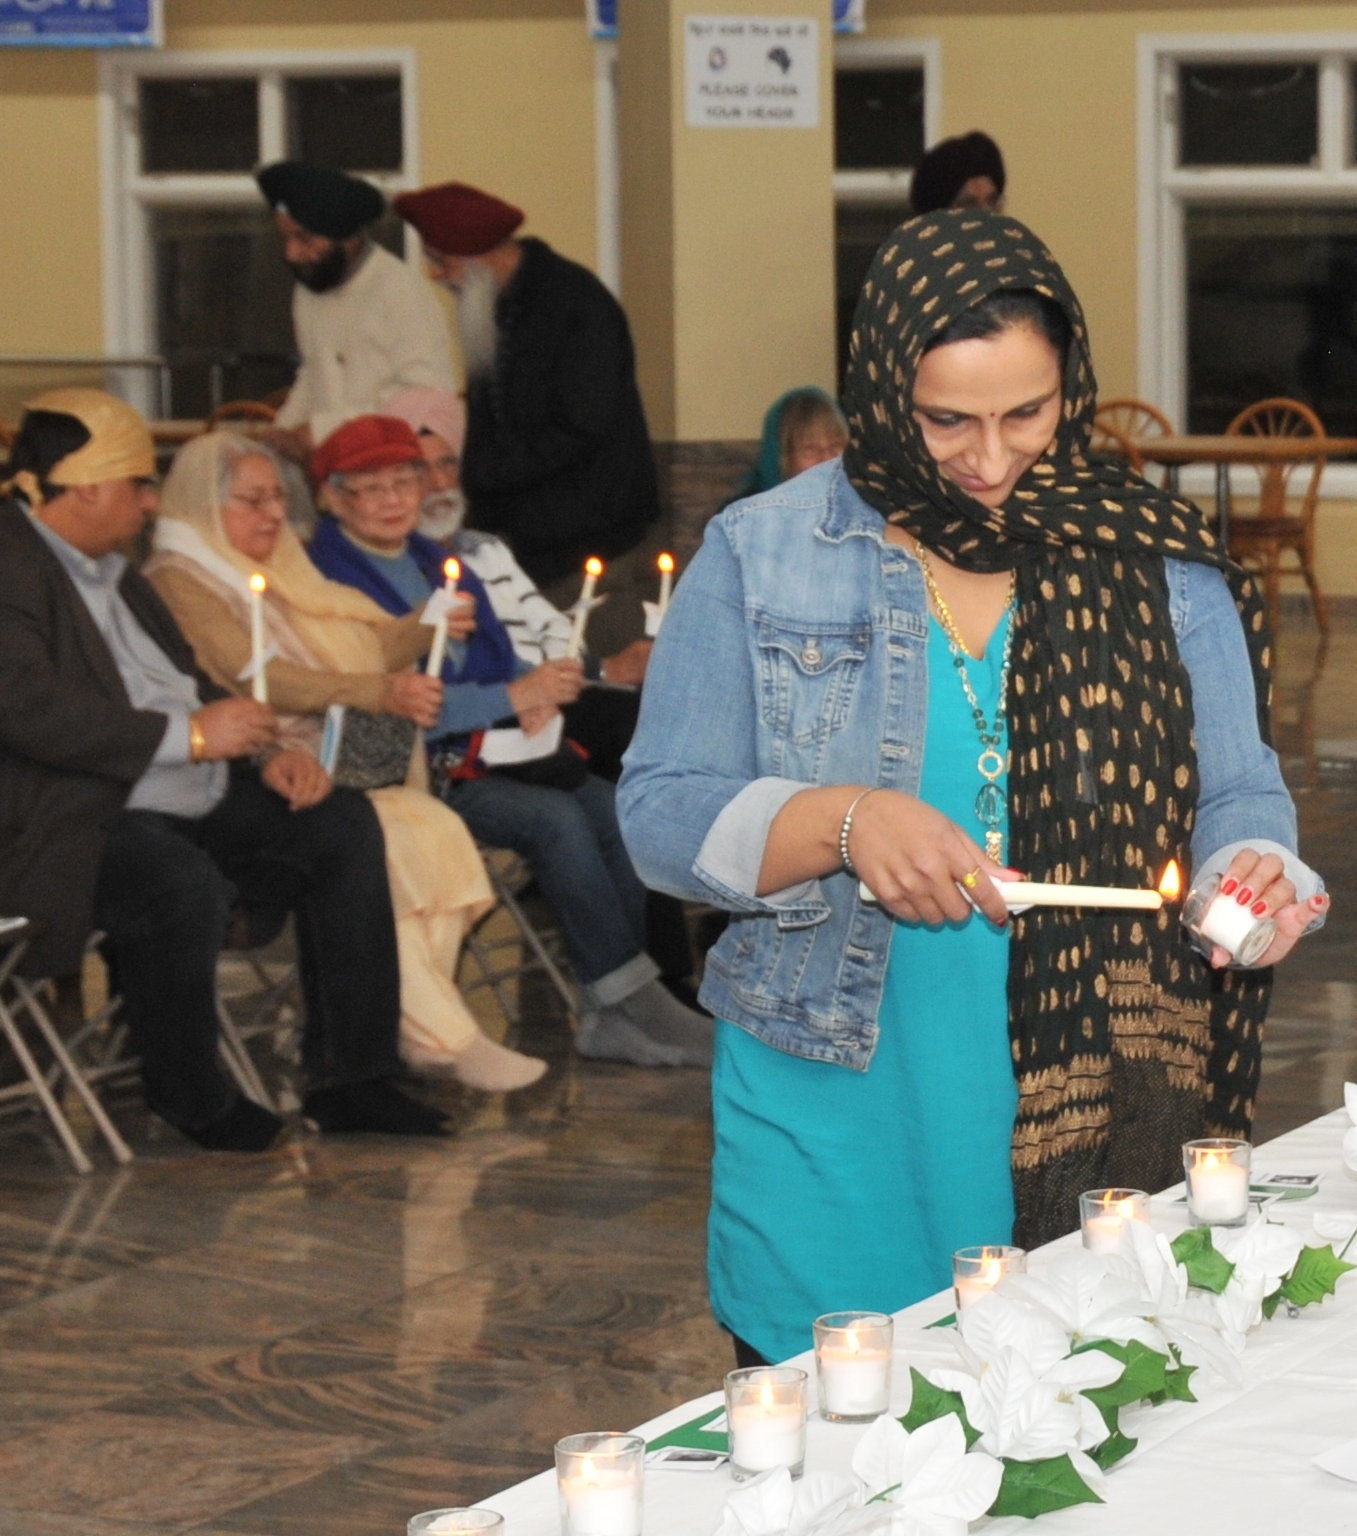 Chasing Justice Victims Of Colorado Gun Violence Names: Sikh Organization Of Illinois Holds Candle Light Vigil For